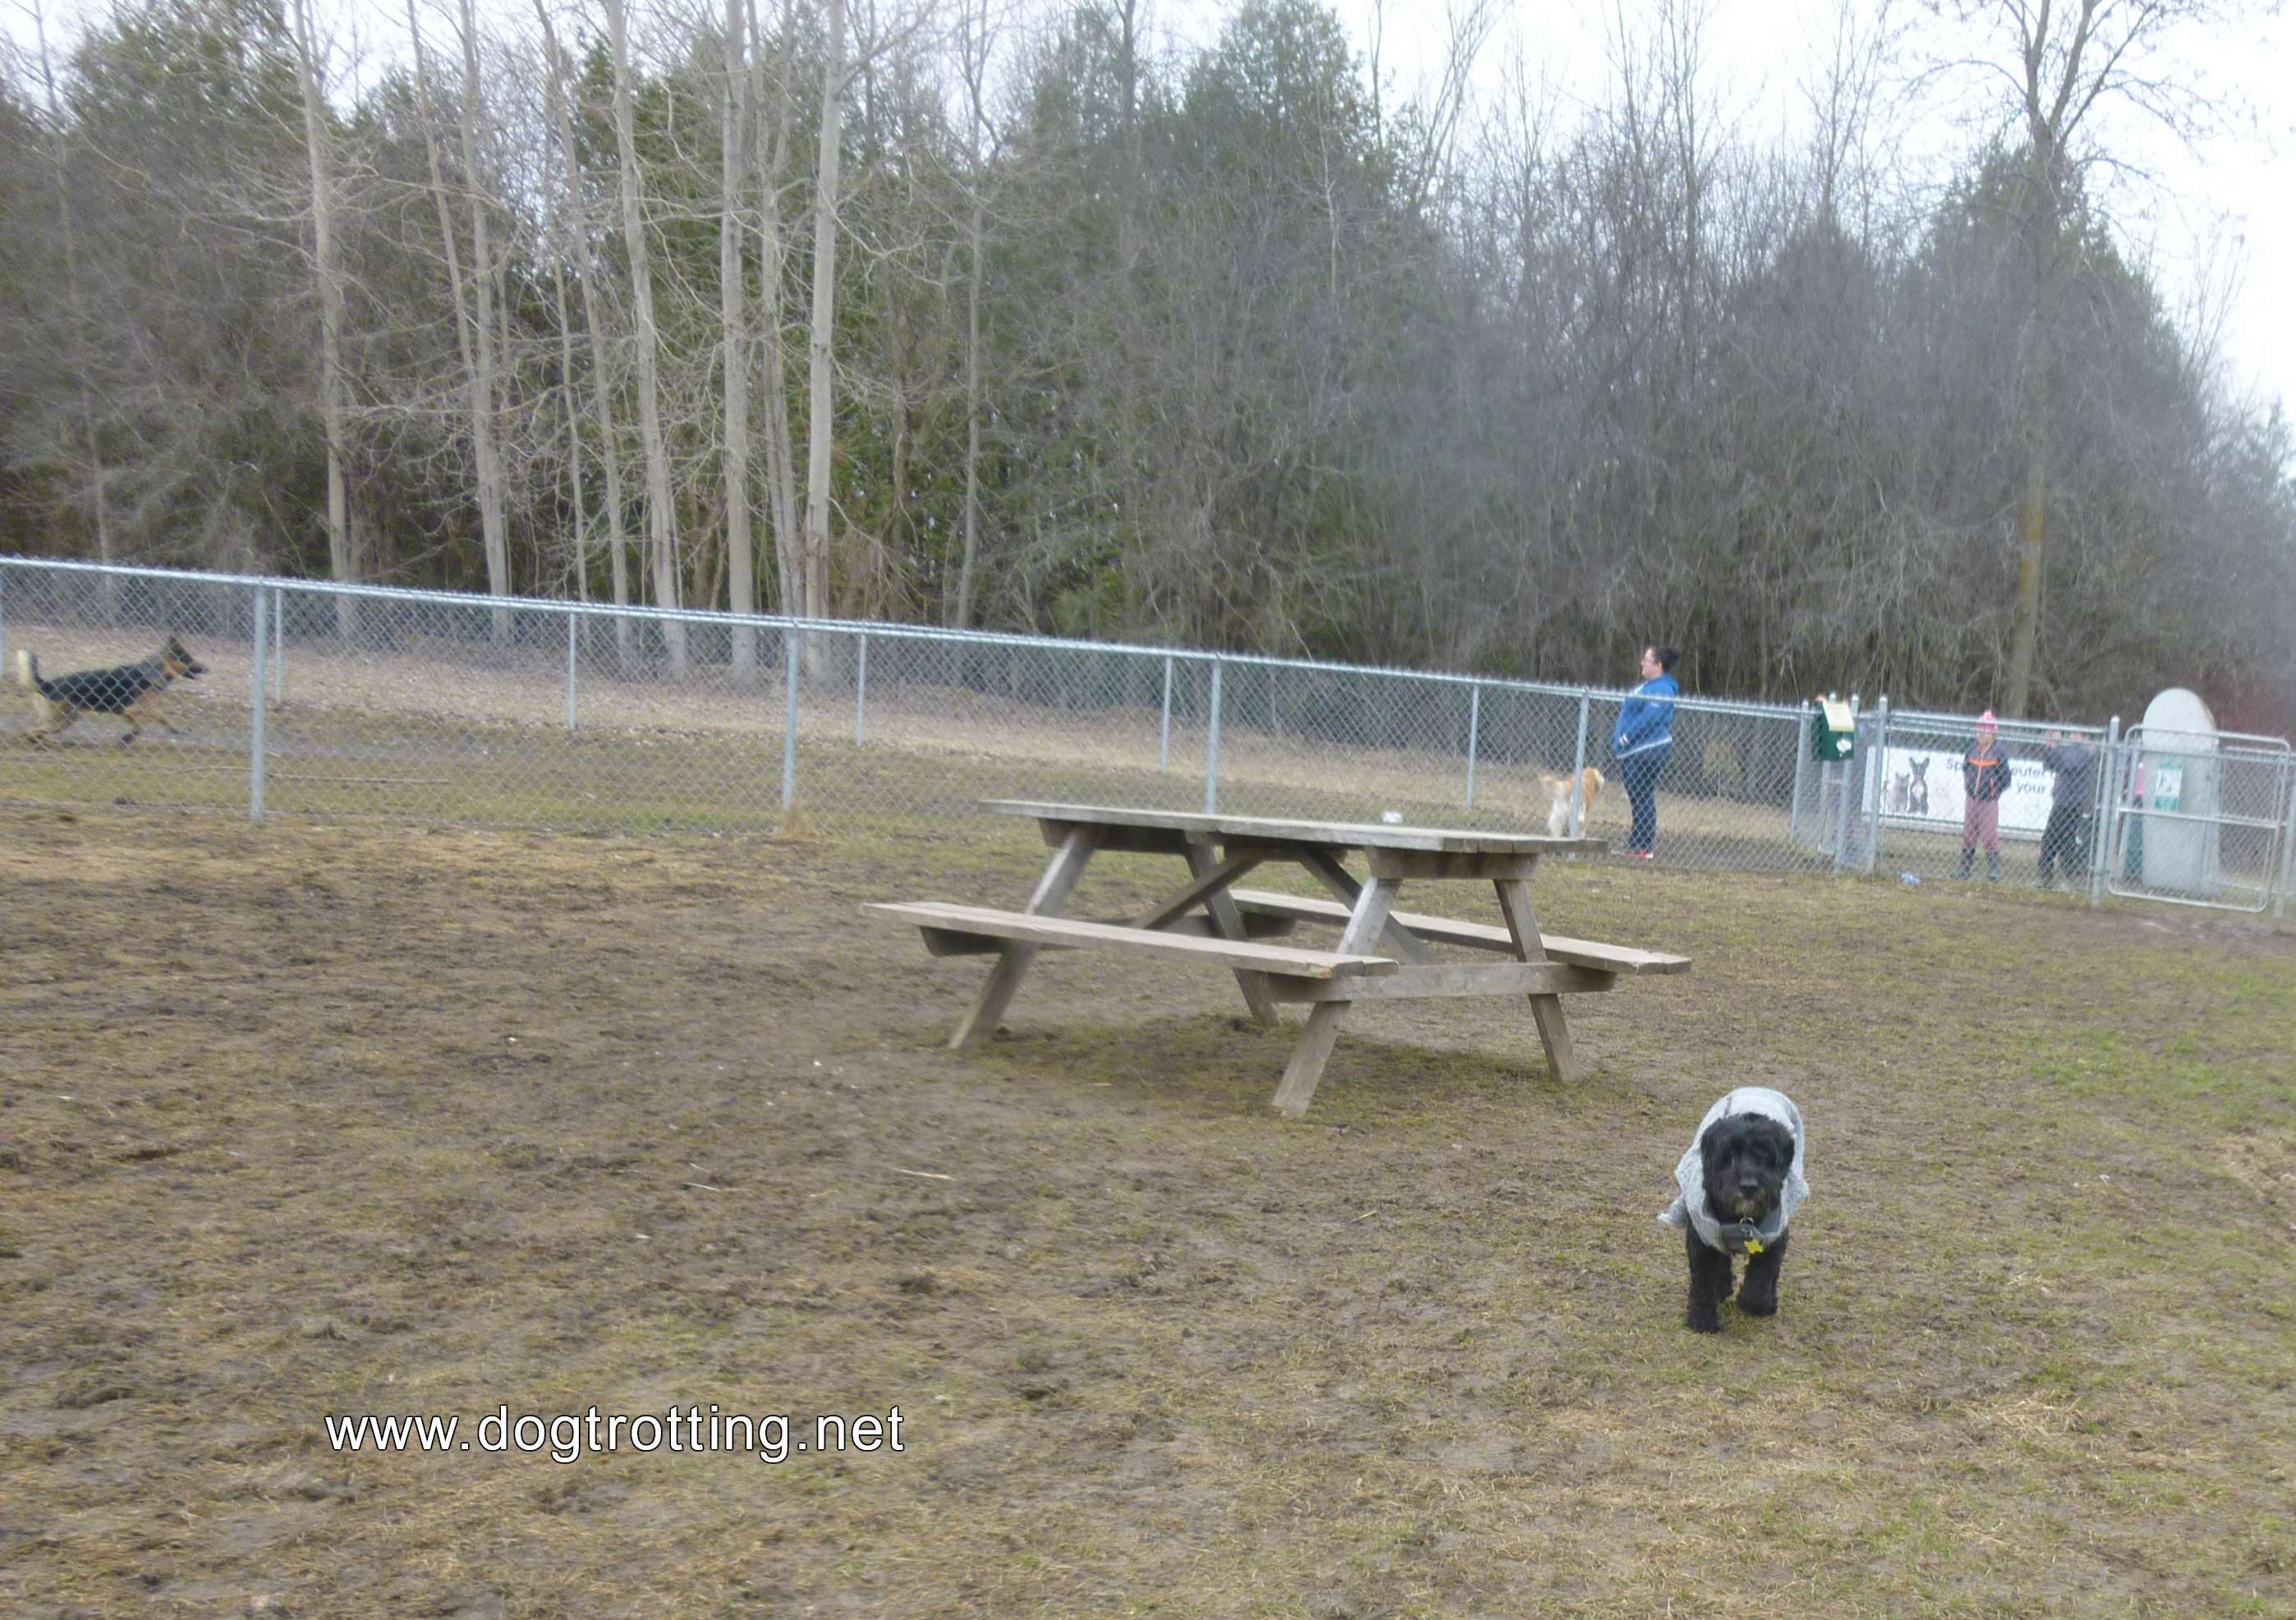 Leash free dog park in Peterborough, Ontario